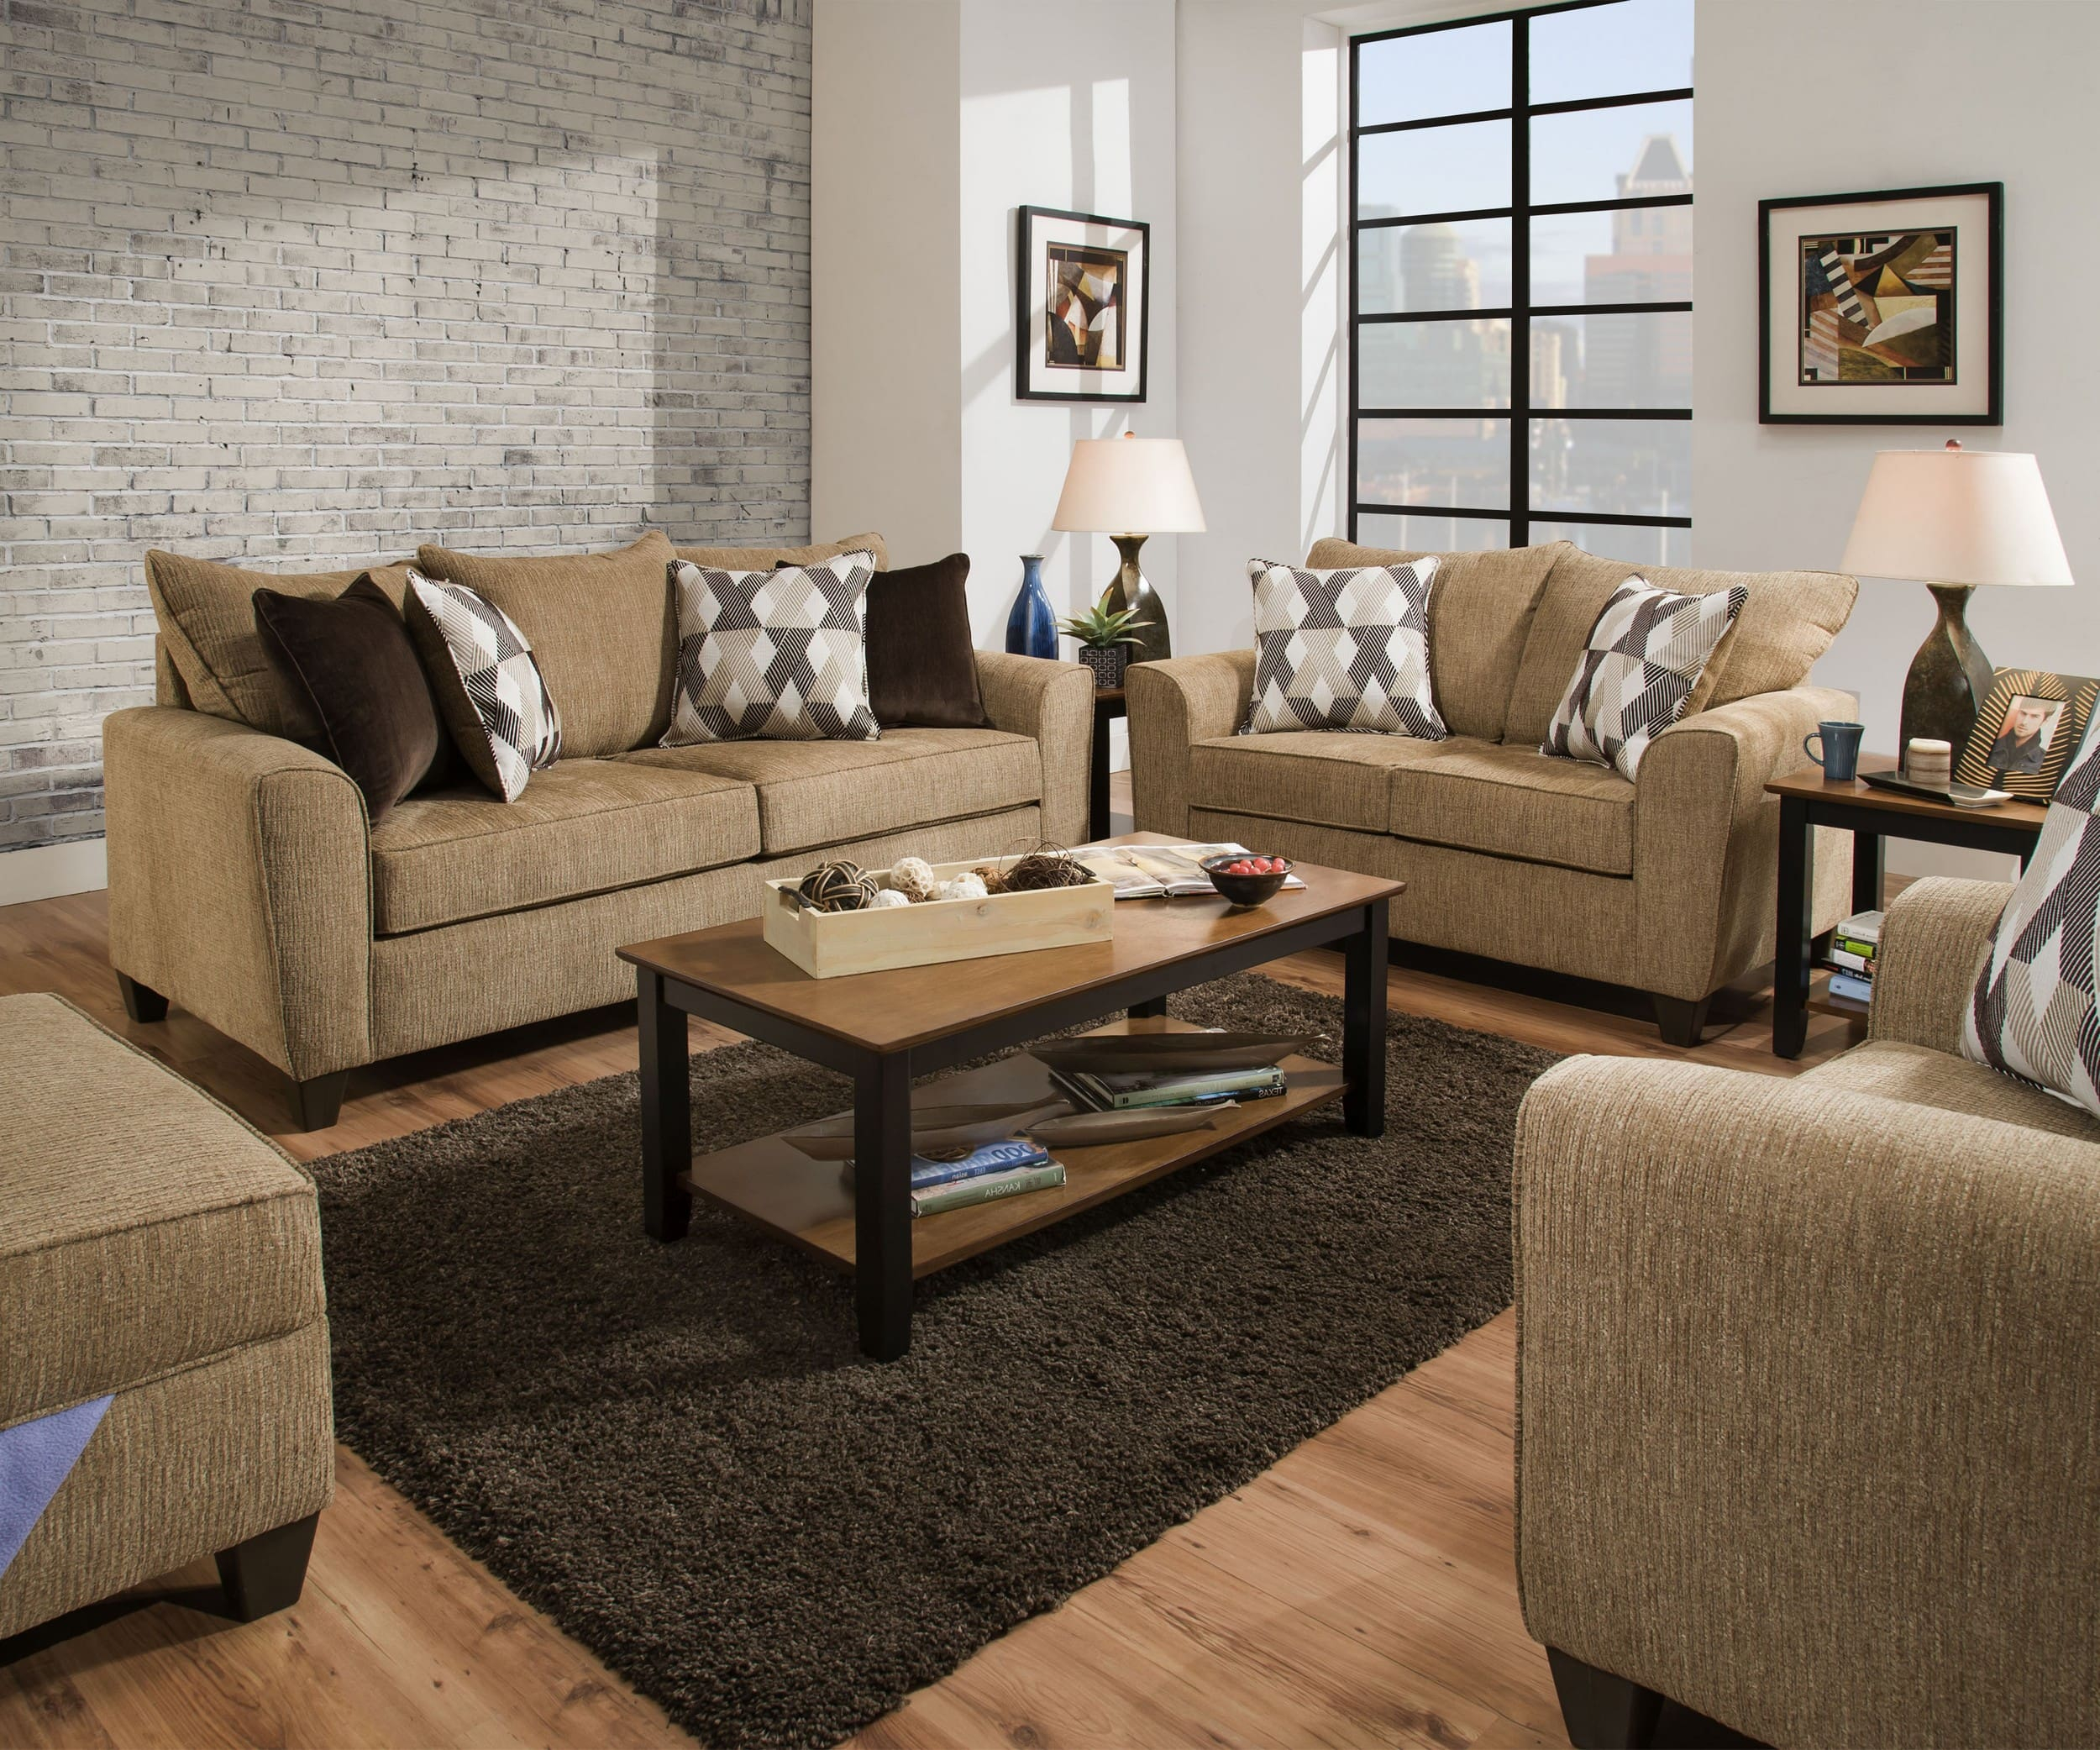 Simmons Upholstery 9096 04q Reed Tan 9096 02 Reed Tan 9096 01 Reed Tan for 14 Awesome Tricks of How to Makeover Sleeper Living Room Set